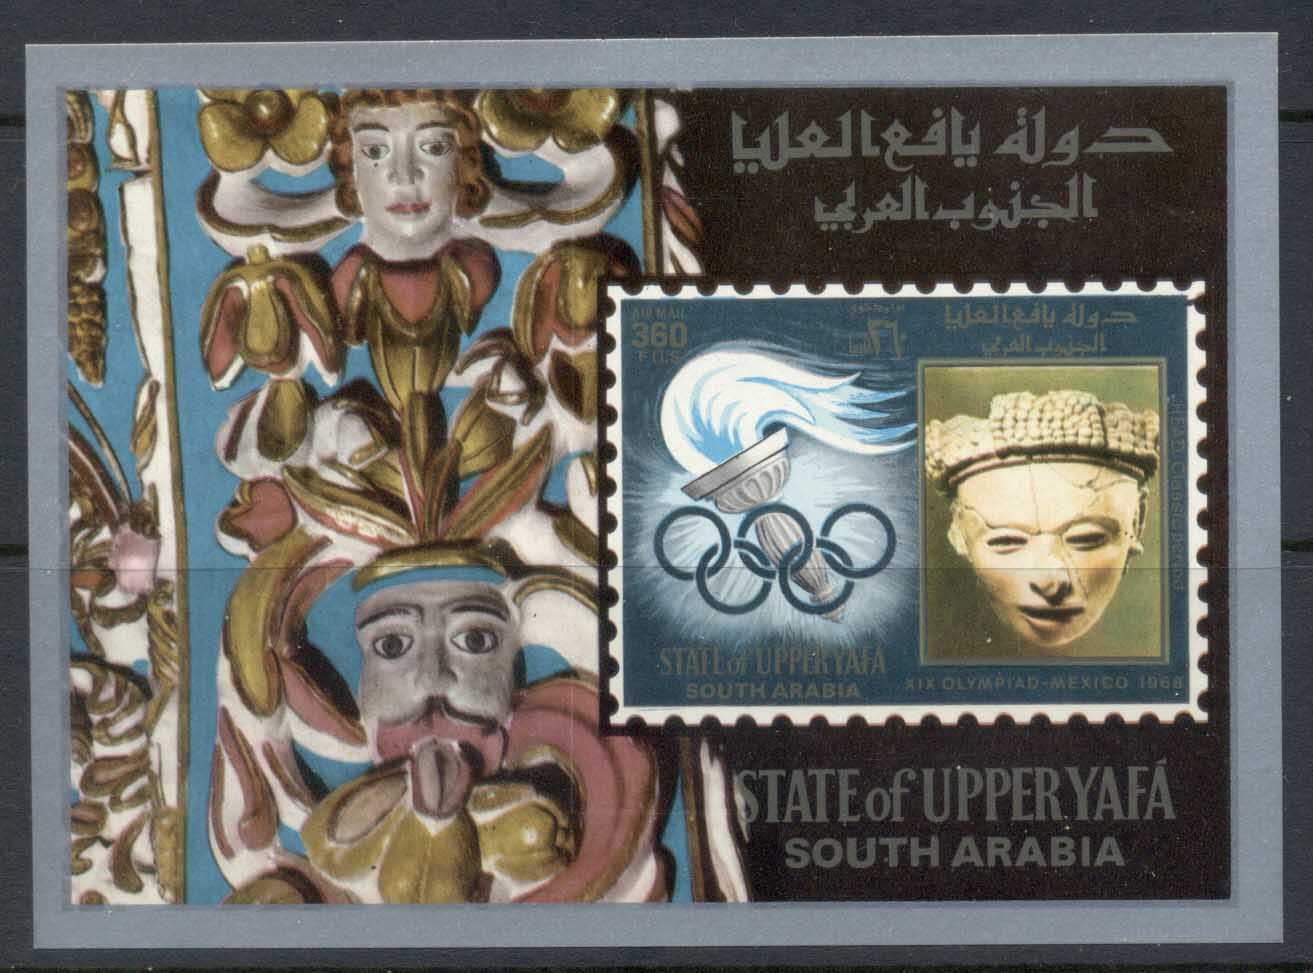 Aden State of Upper Yaffa 1967 Mi#MS1 Summer Olympics Mexico MS MLH